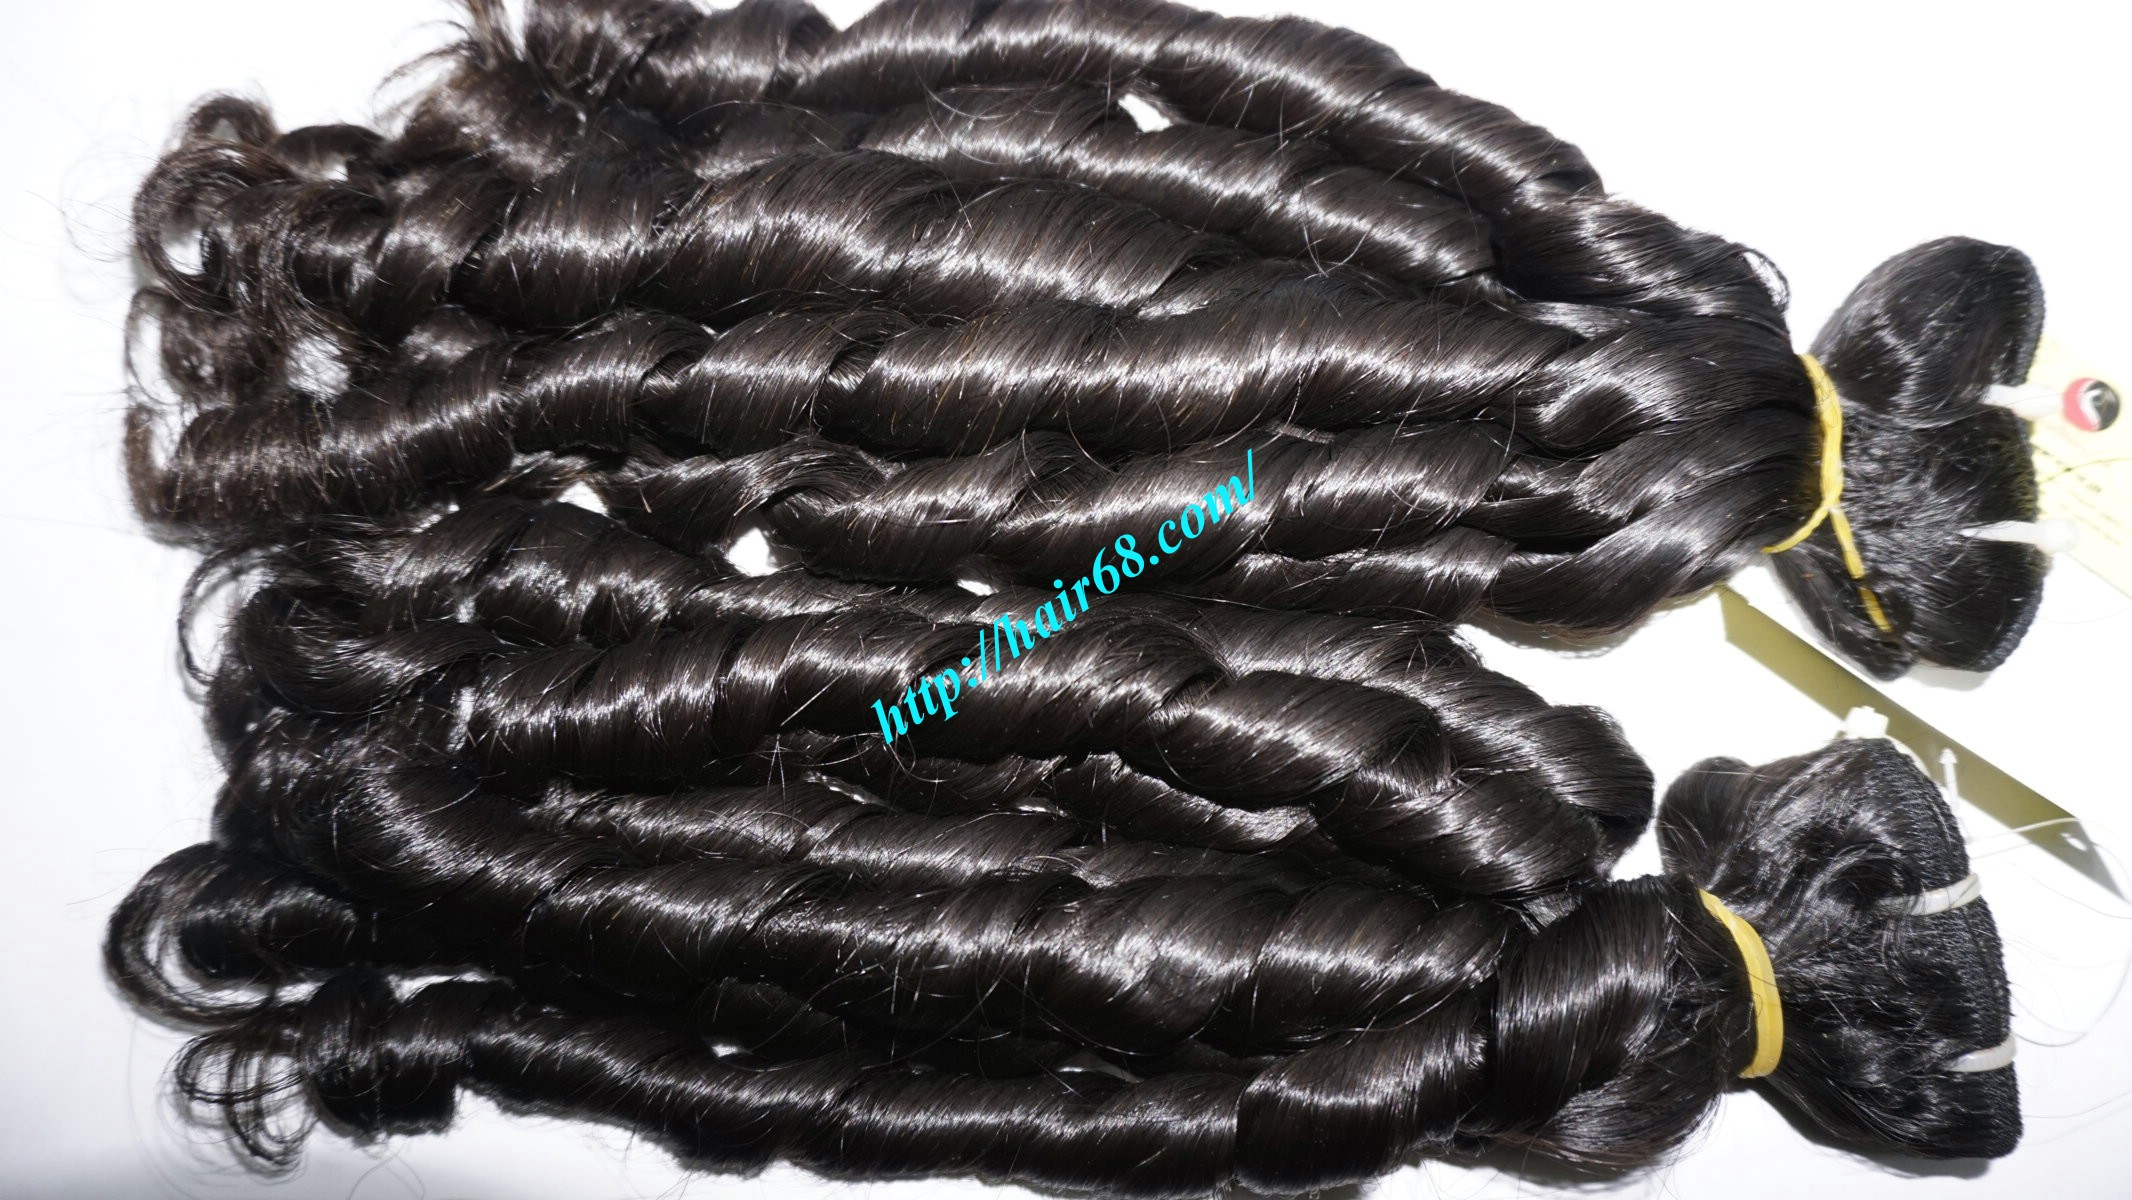 20 inch - Weave Loose Curly Hair Extensions - Double Drawn 5